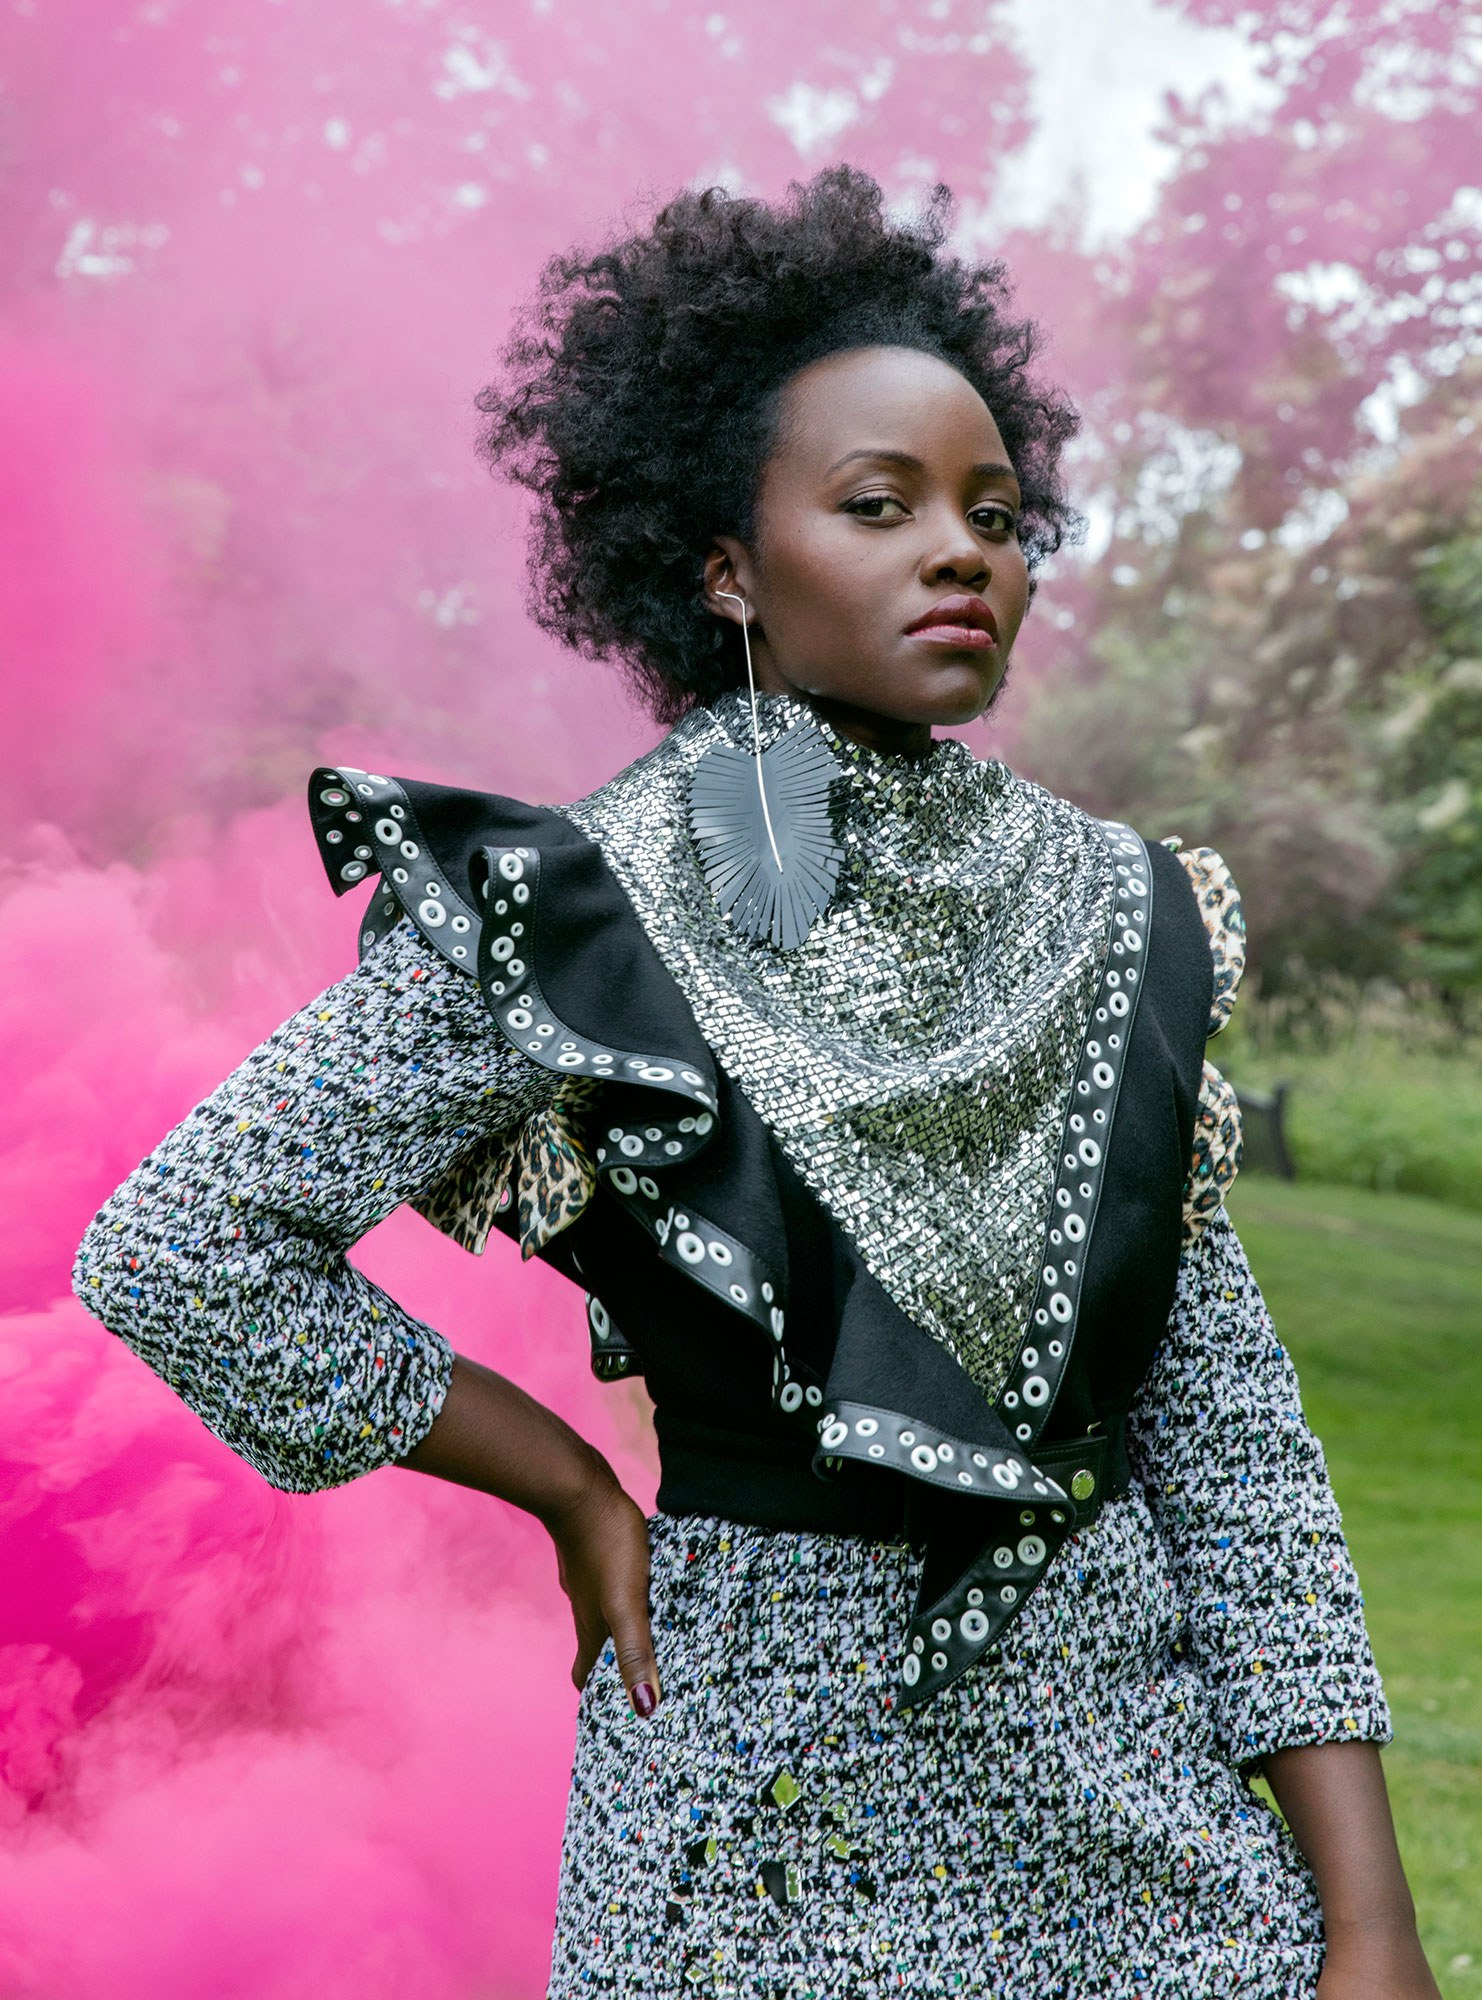 - Lupita is in clothing & jewelry by Louis Vuitton